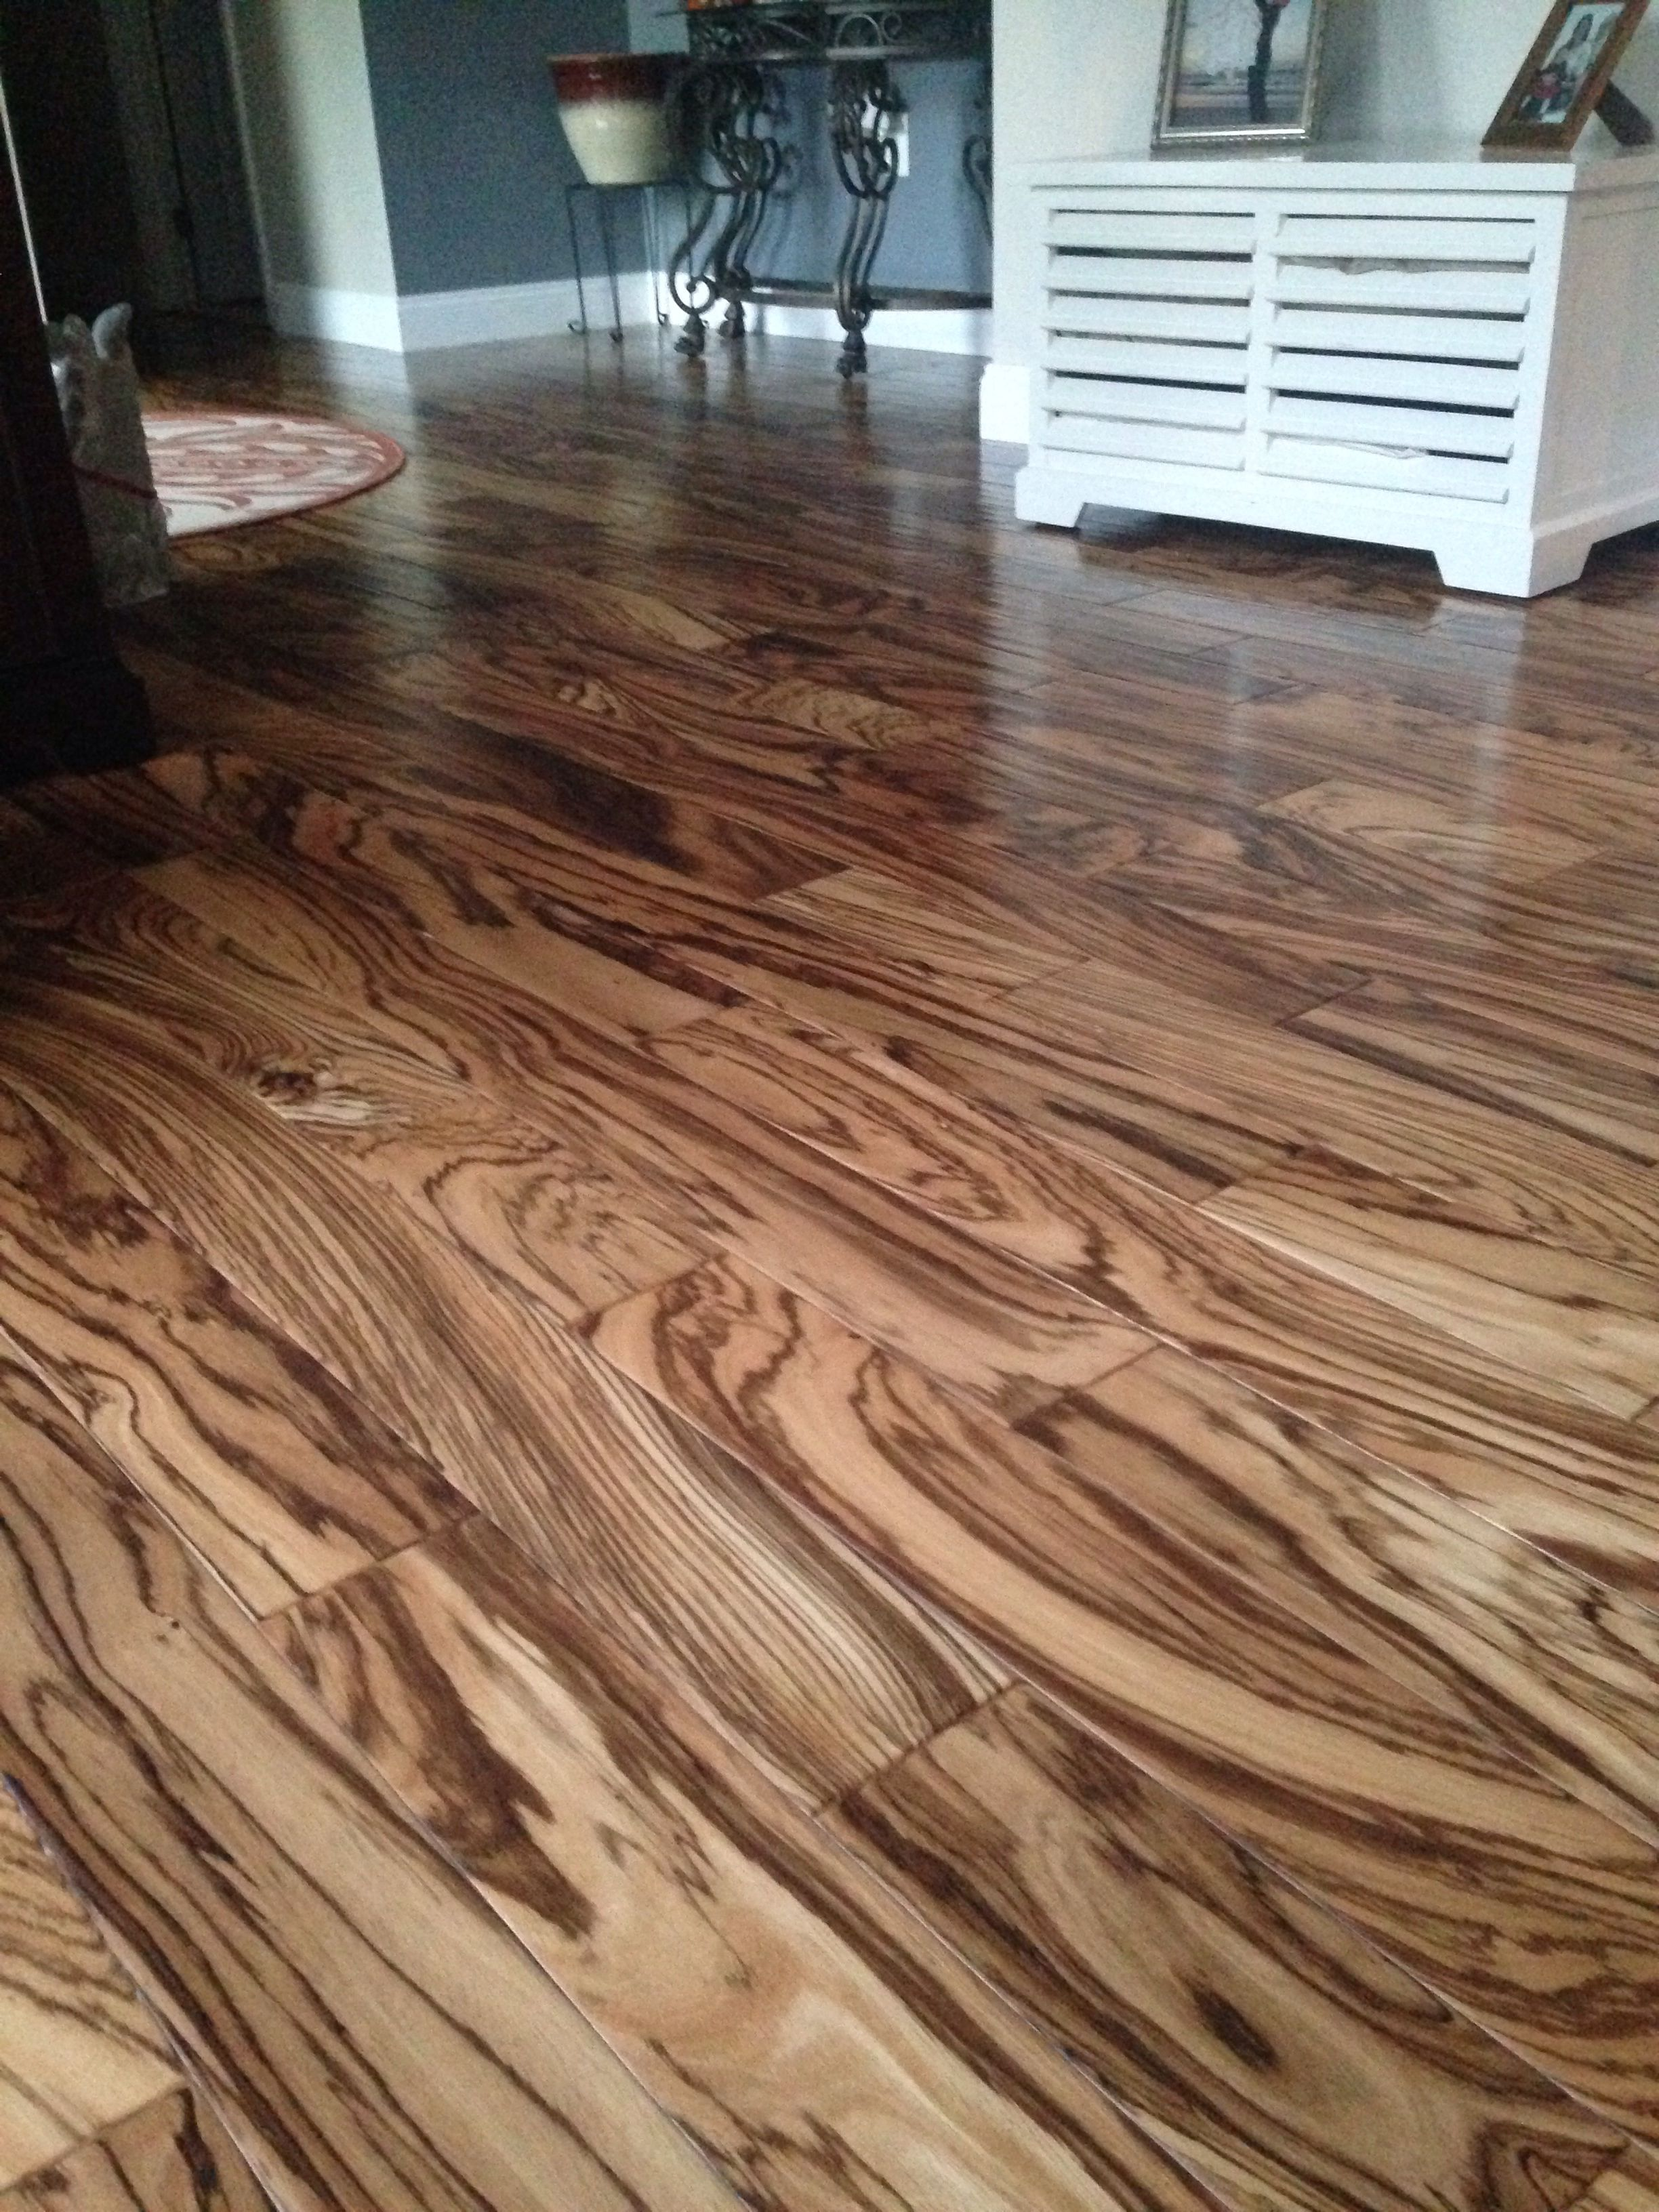 Tiger Wood Hardwood Floors Tigerwood Flooring Hardwood